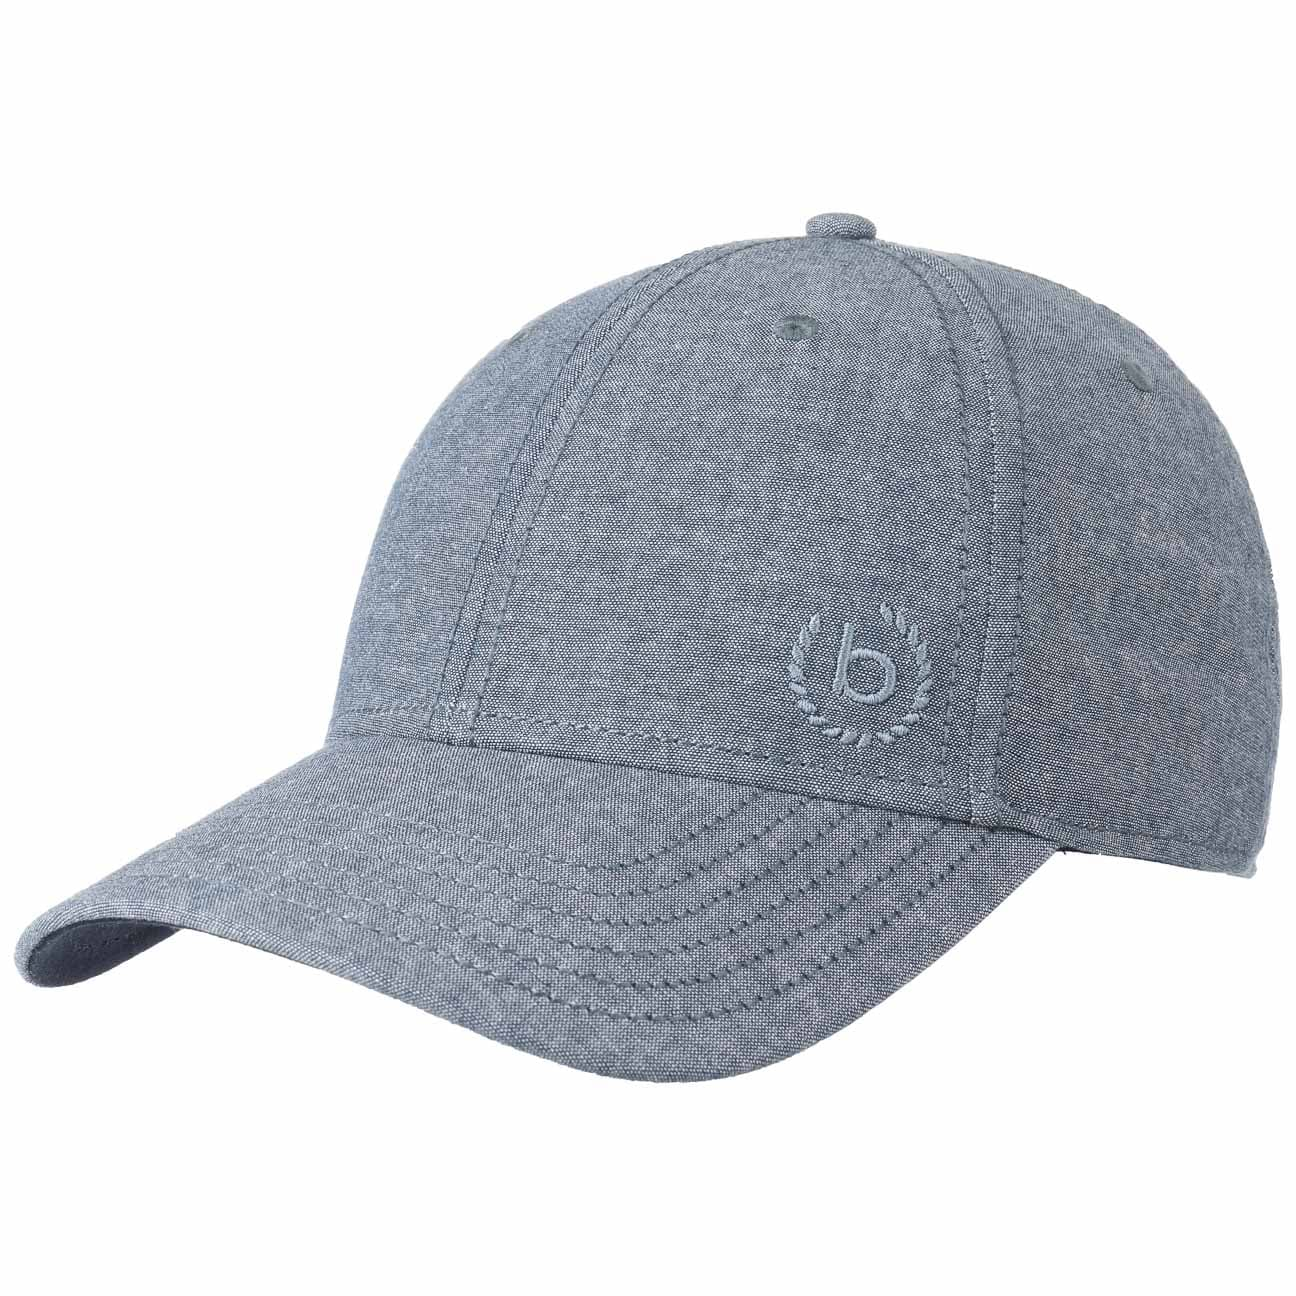 Gorra de B?isbol Cotton Basic by bugatti  gorra de baseball